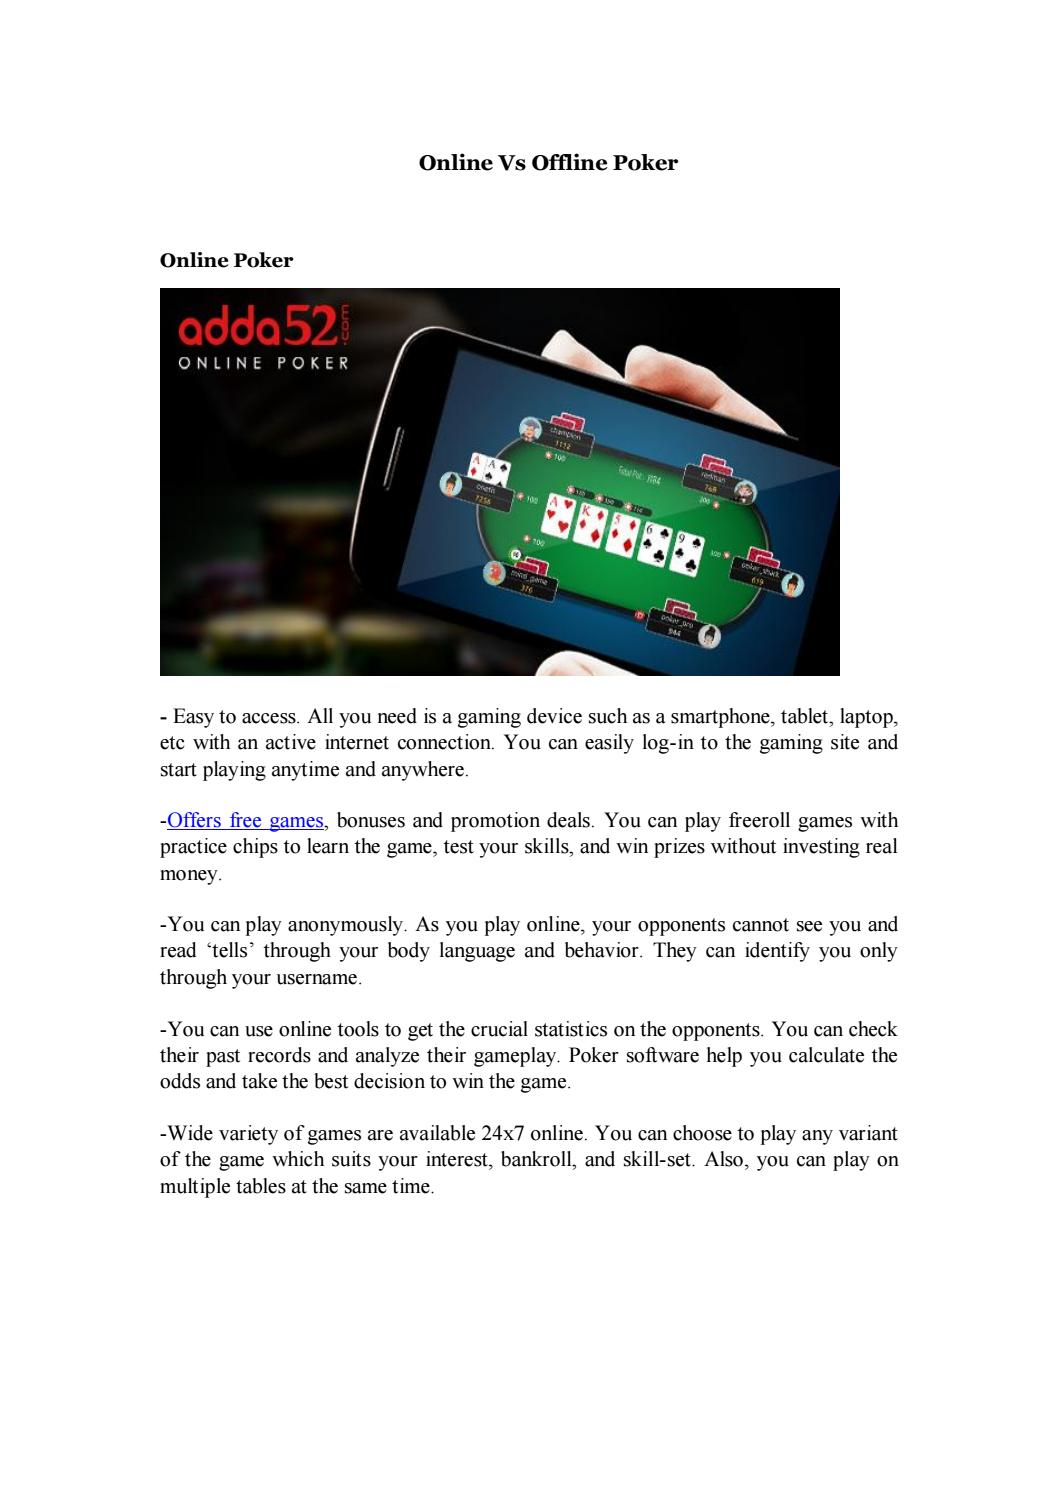 Offline poker Vs Online Poker by Adda52Live - issuu